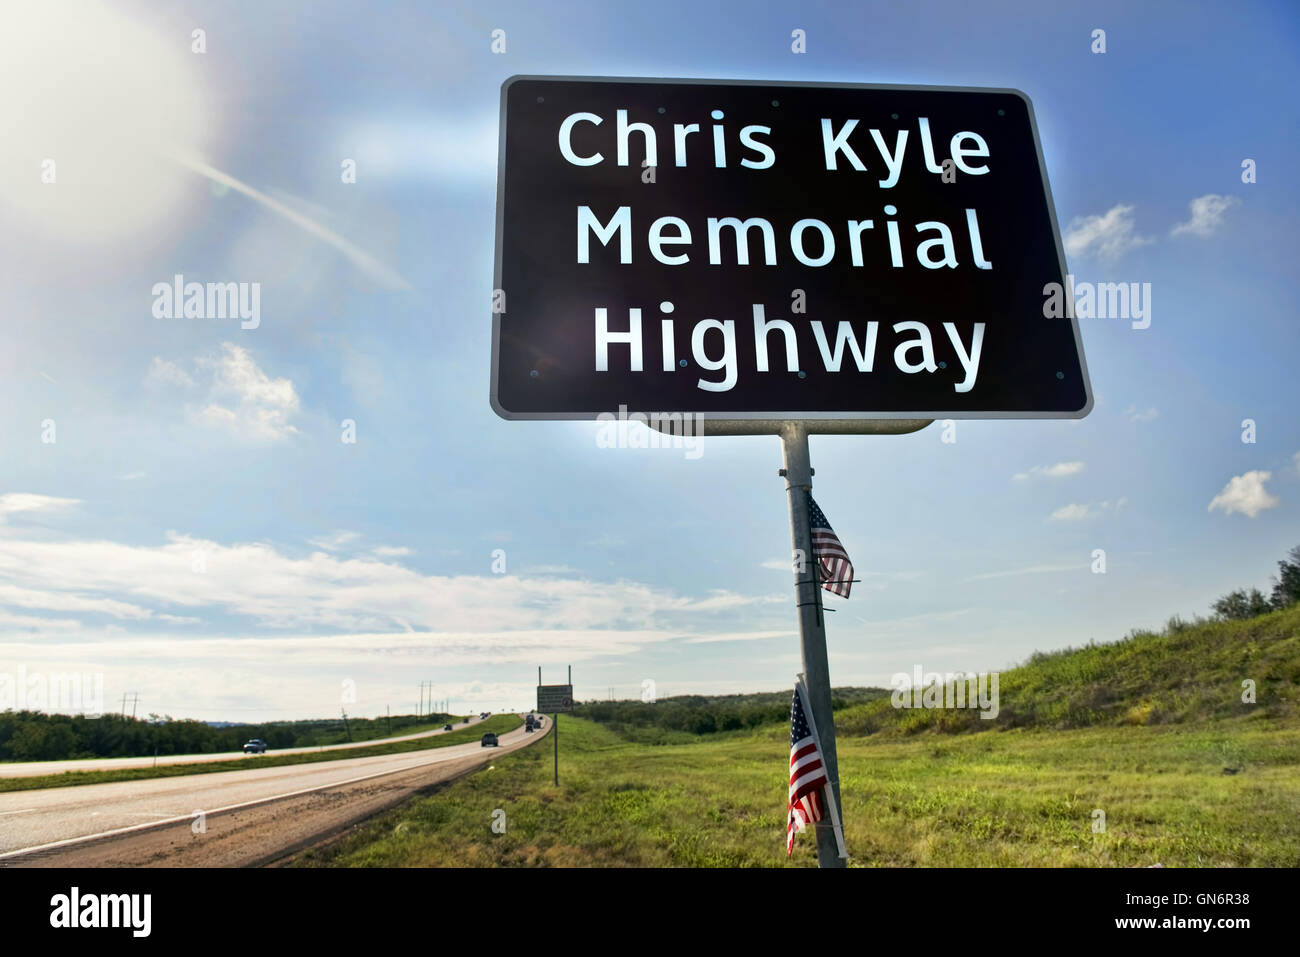 Chris Kyle Memorial Hwy 287 in Midlothian ,Texas opened in 2016. He was  reported to be the deadliest sniper in his history.